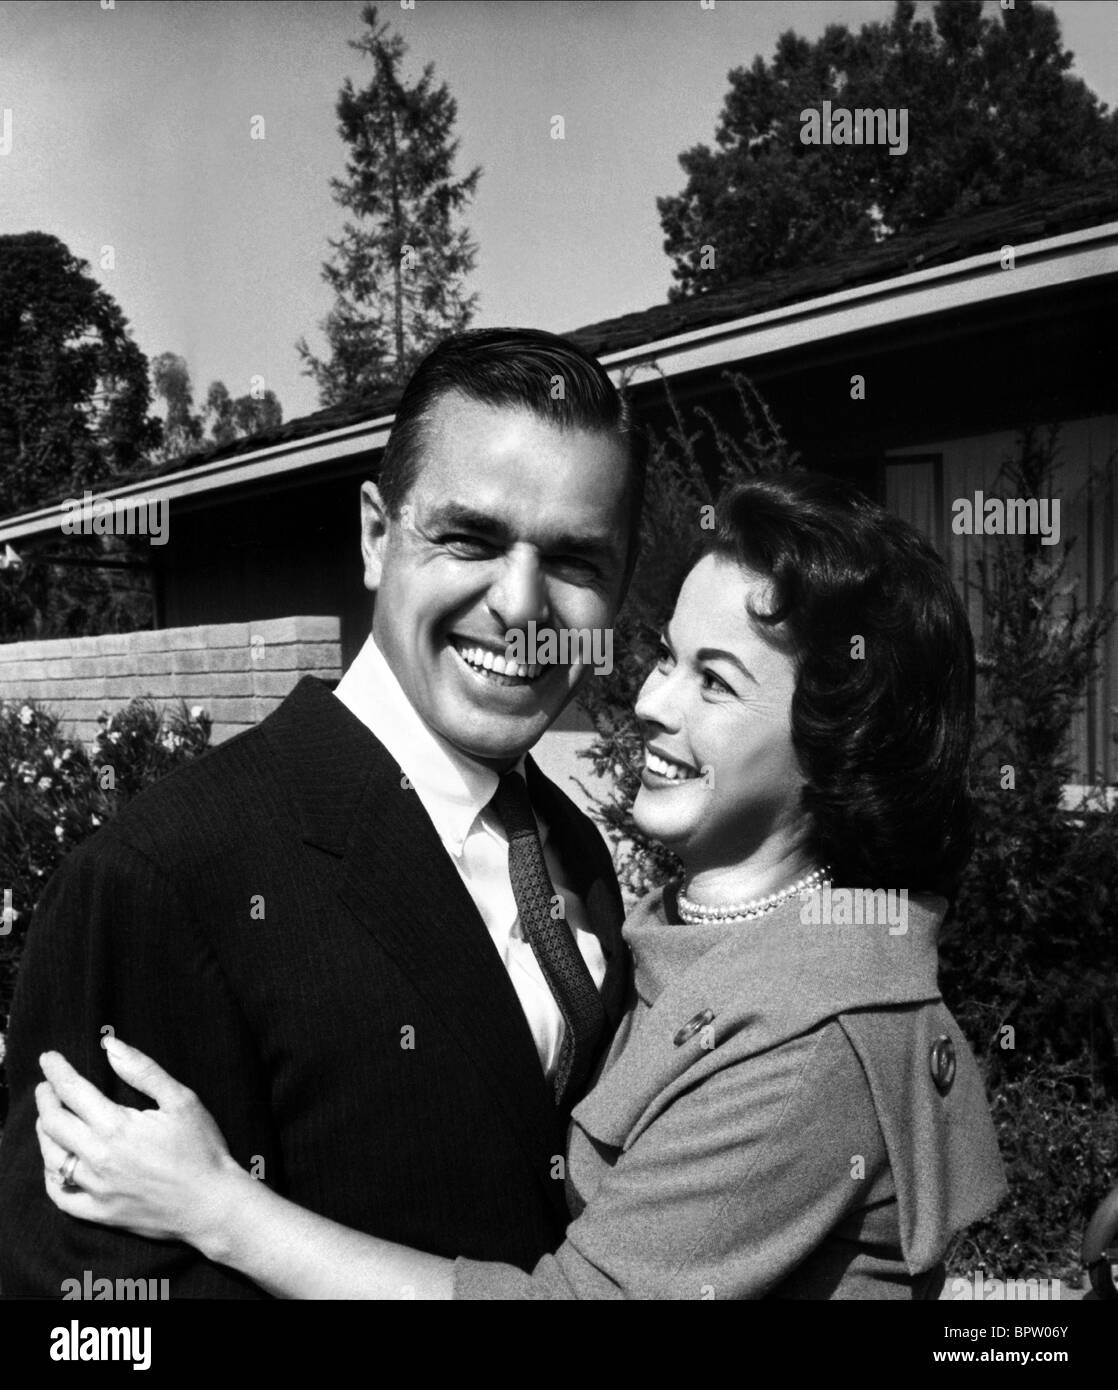 charles alden black amp shirley temple actress with husband